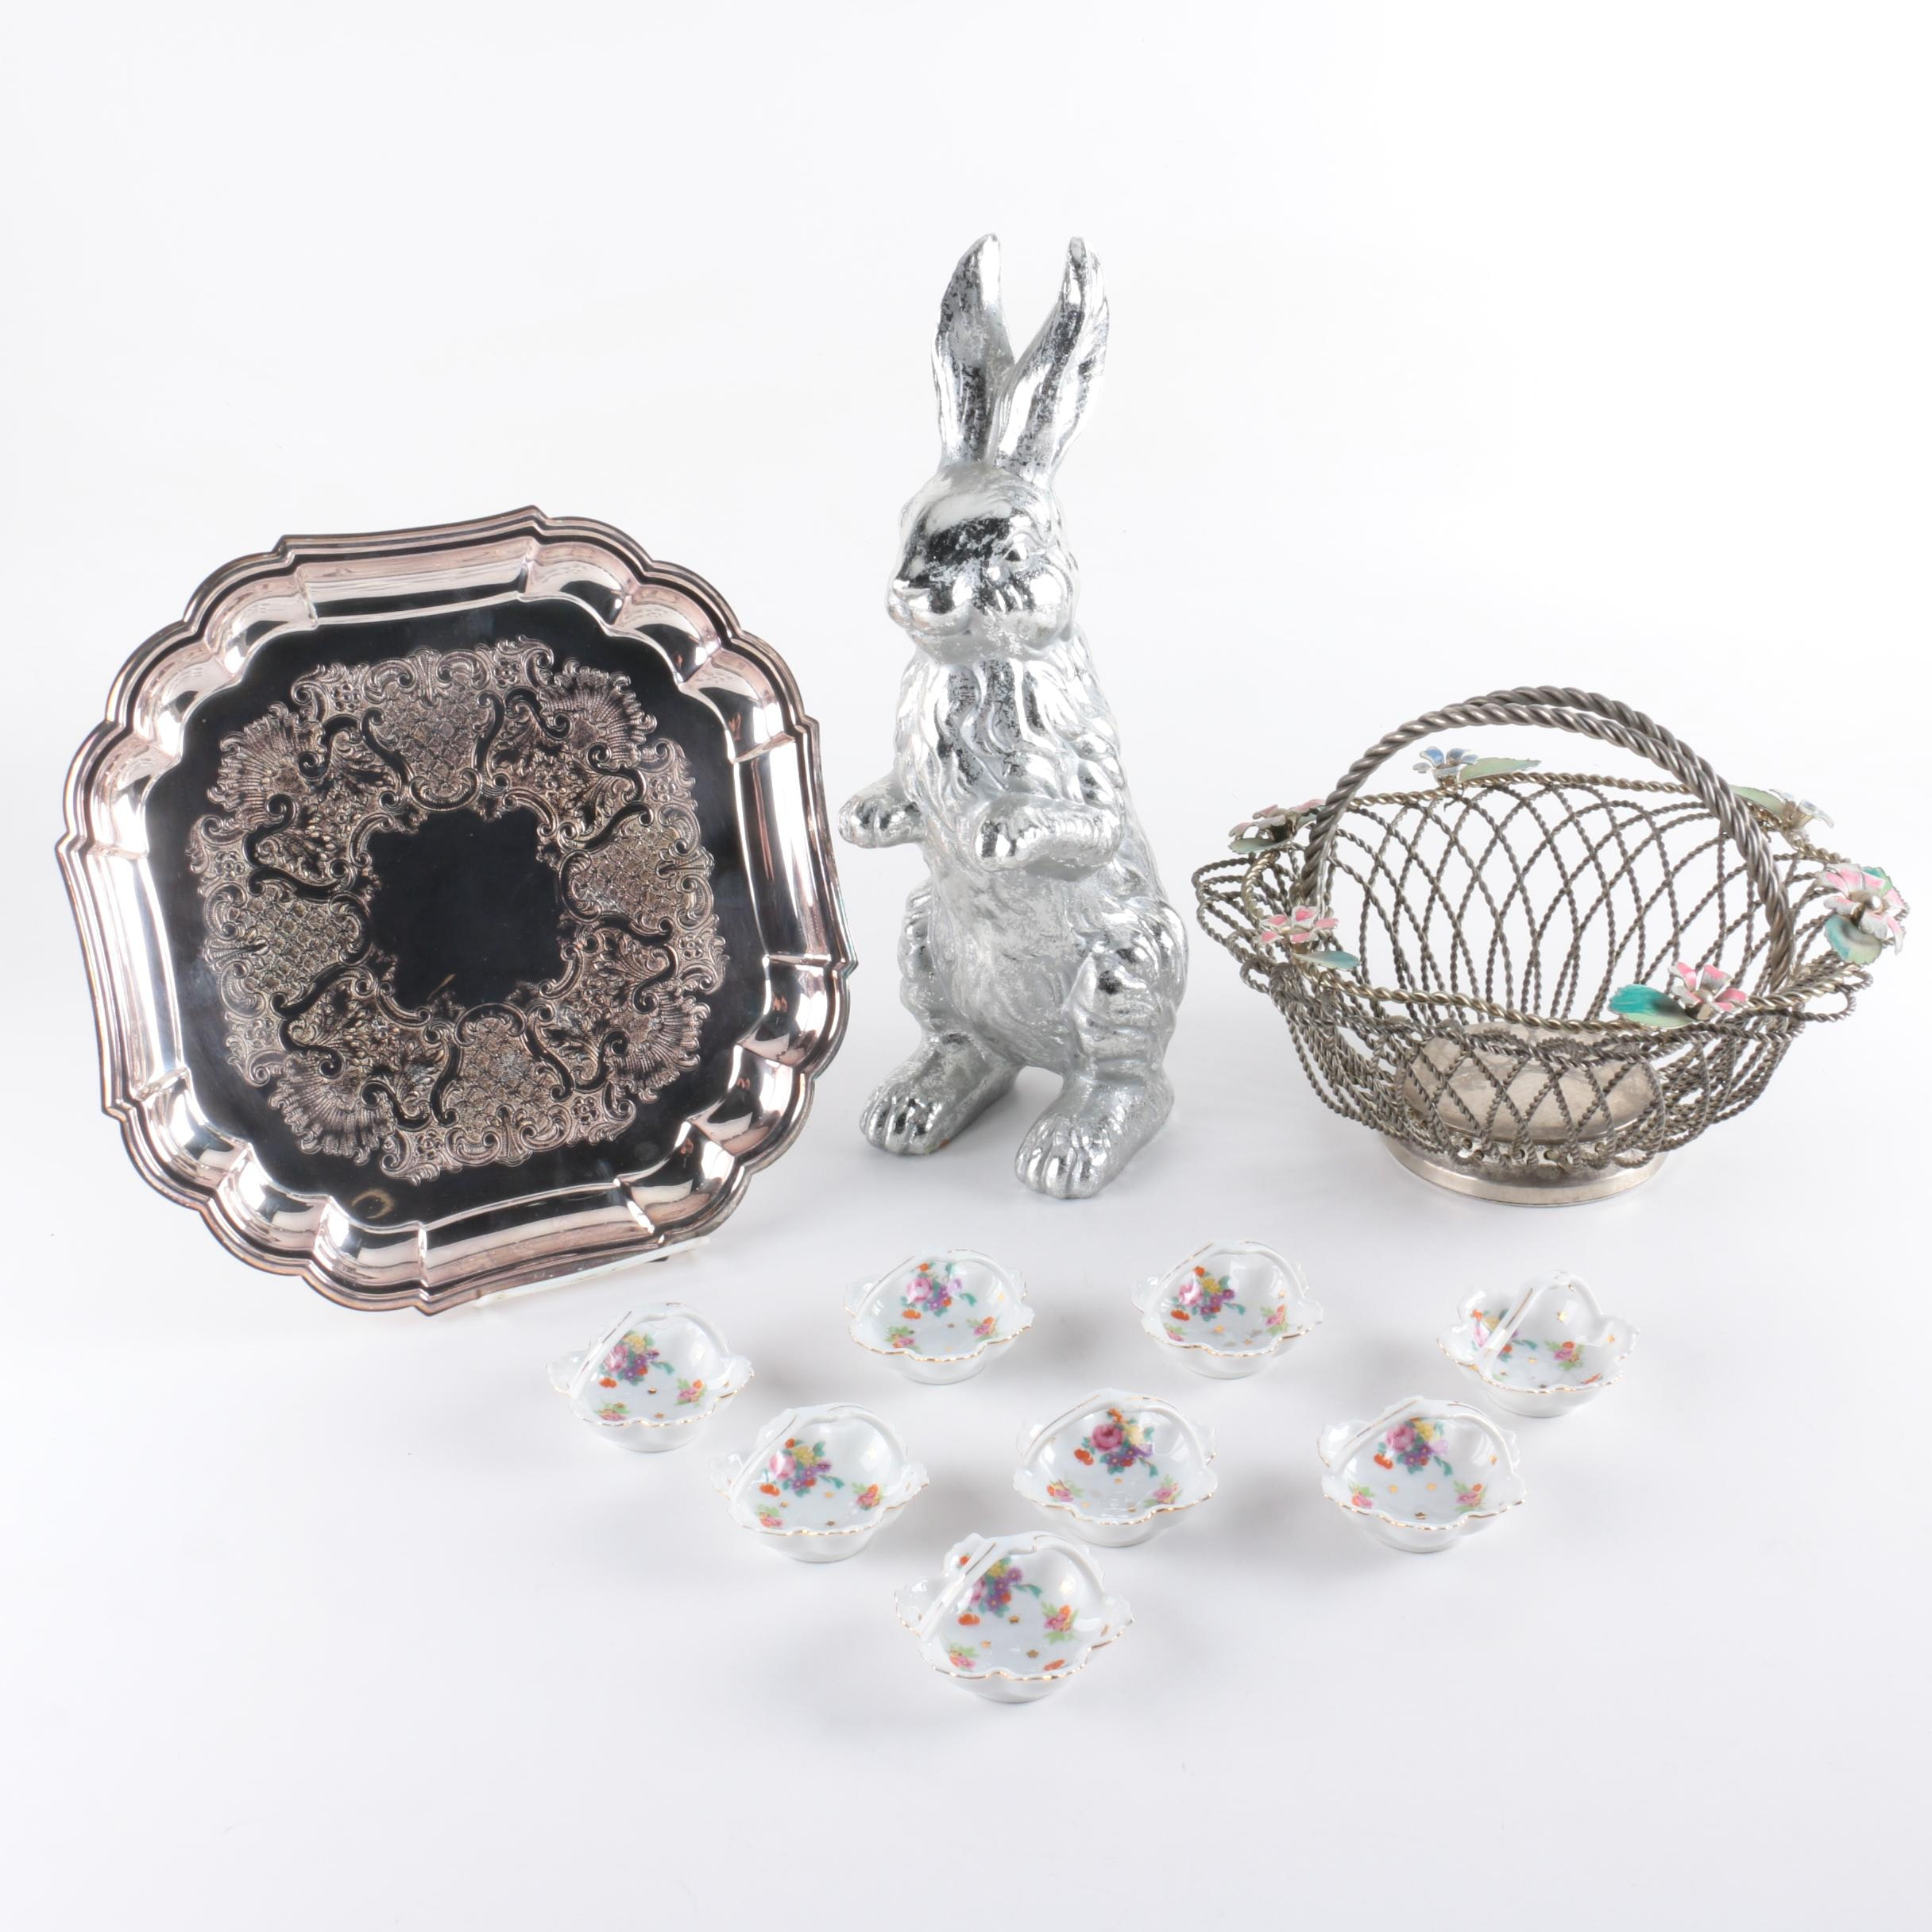 """Gorham """"Heritage"""" Silver Plate Tray and Assorted Spring Decor"""